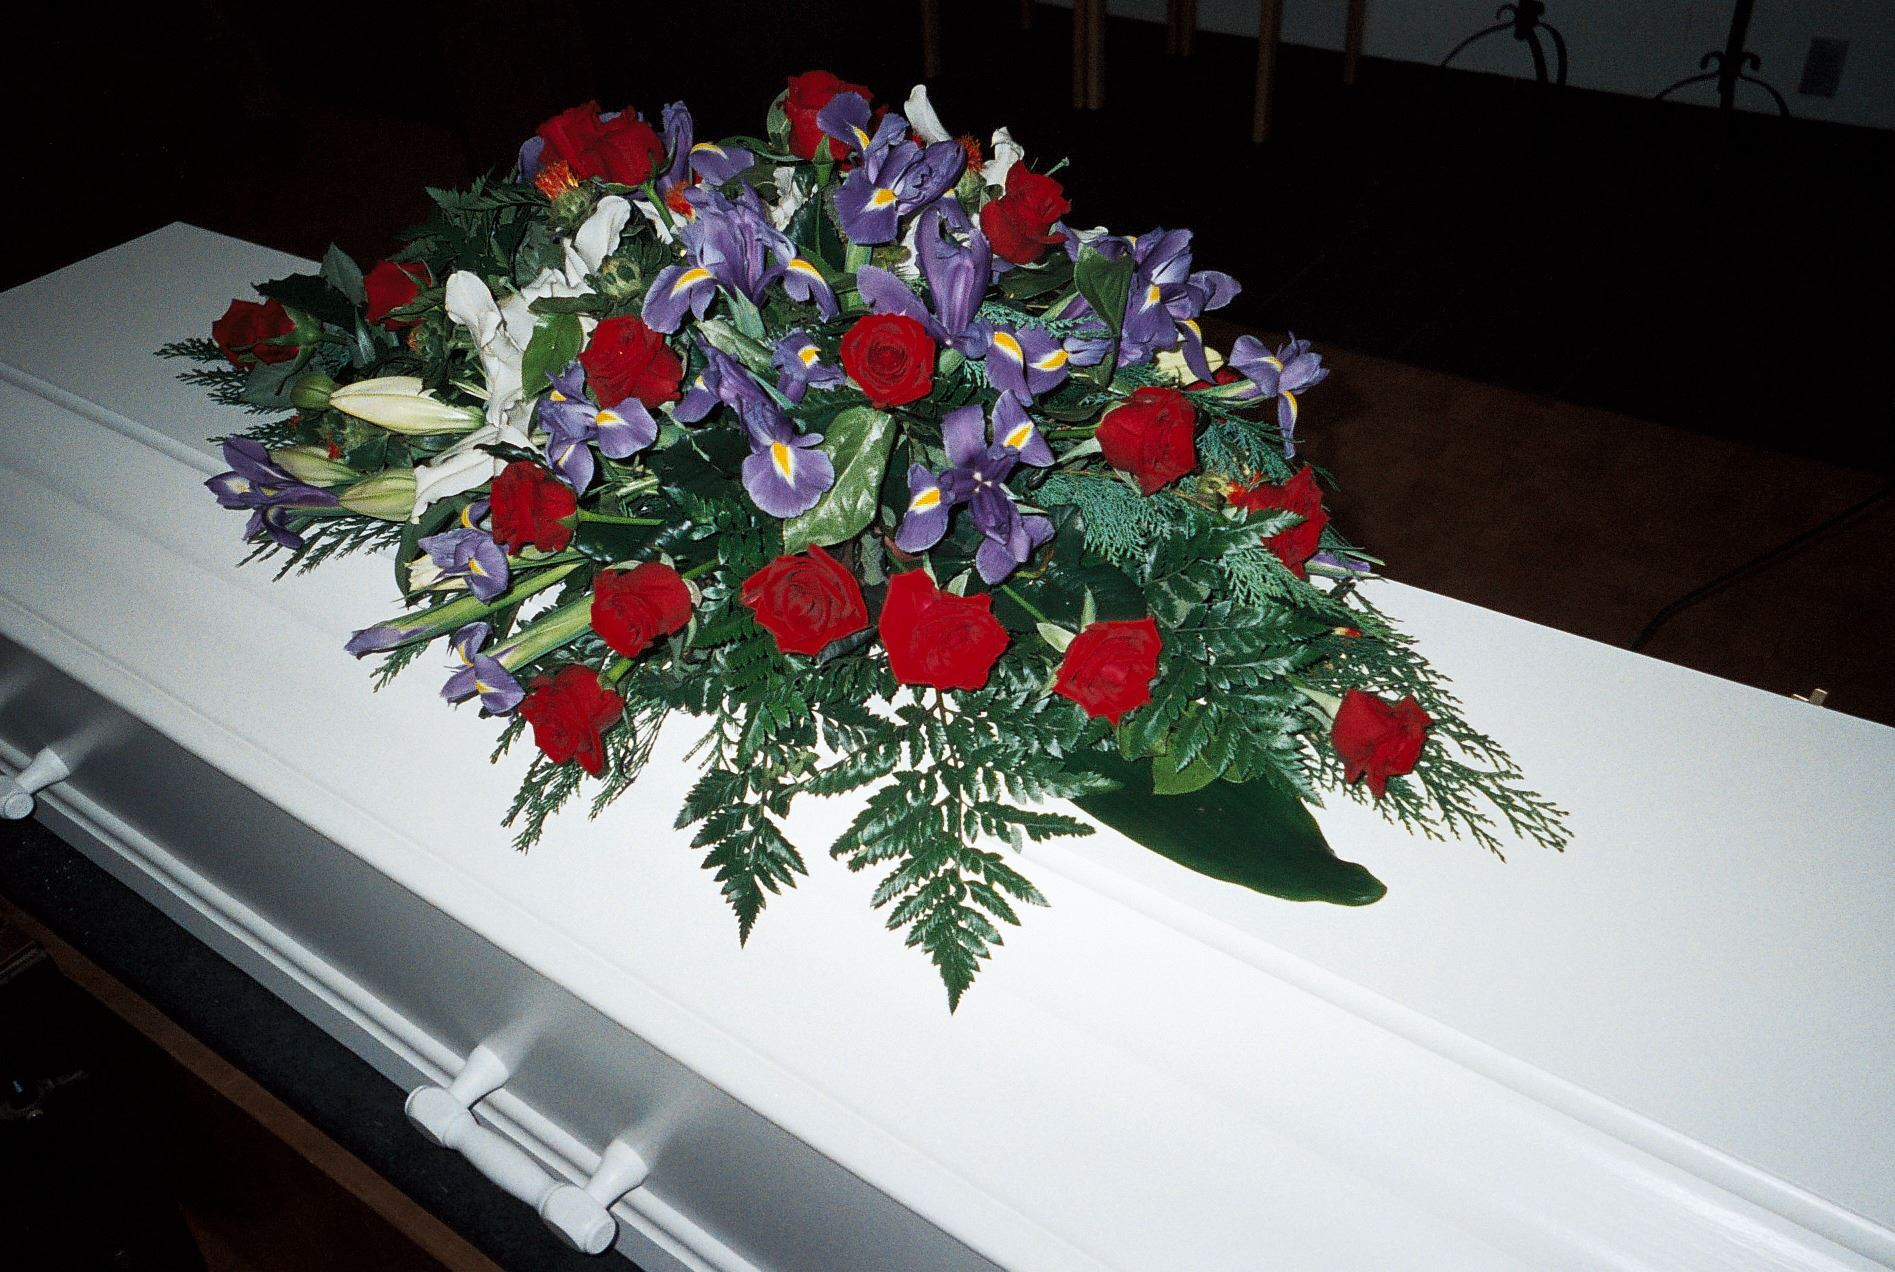 Funeral caskets hsi blma flower delivery shop iceland beautiful casket spray with blue iris red roses white lilies and more 3 sizes izmirmasajfo